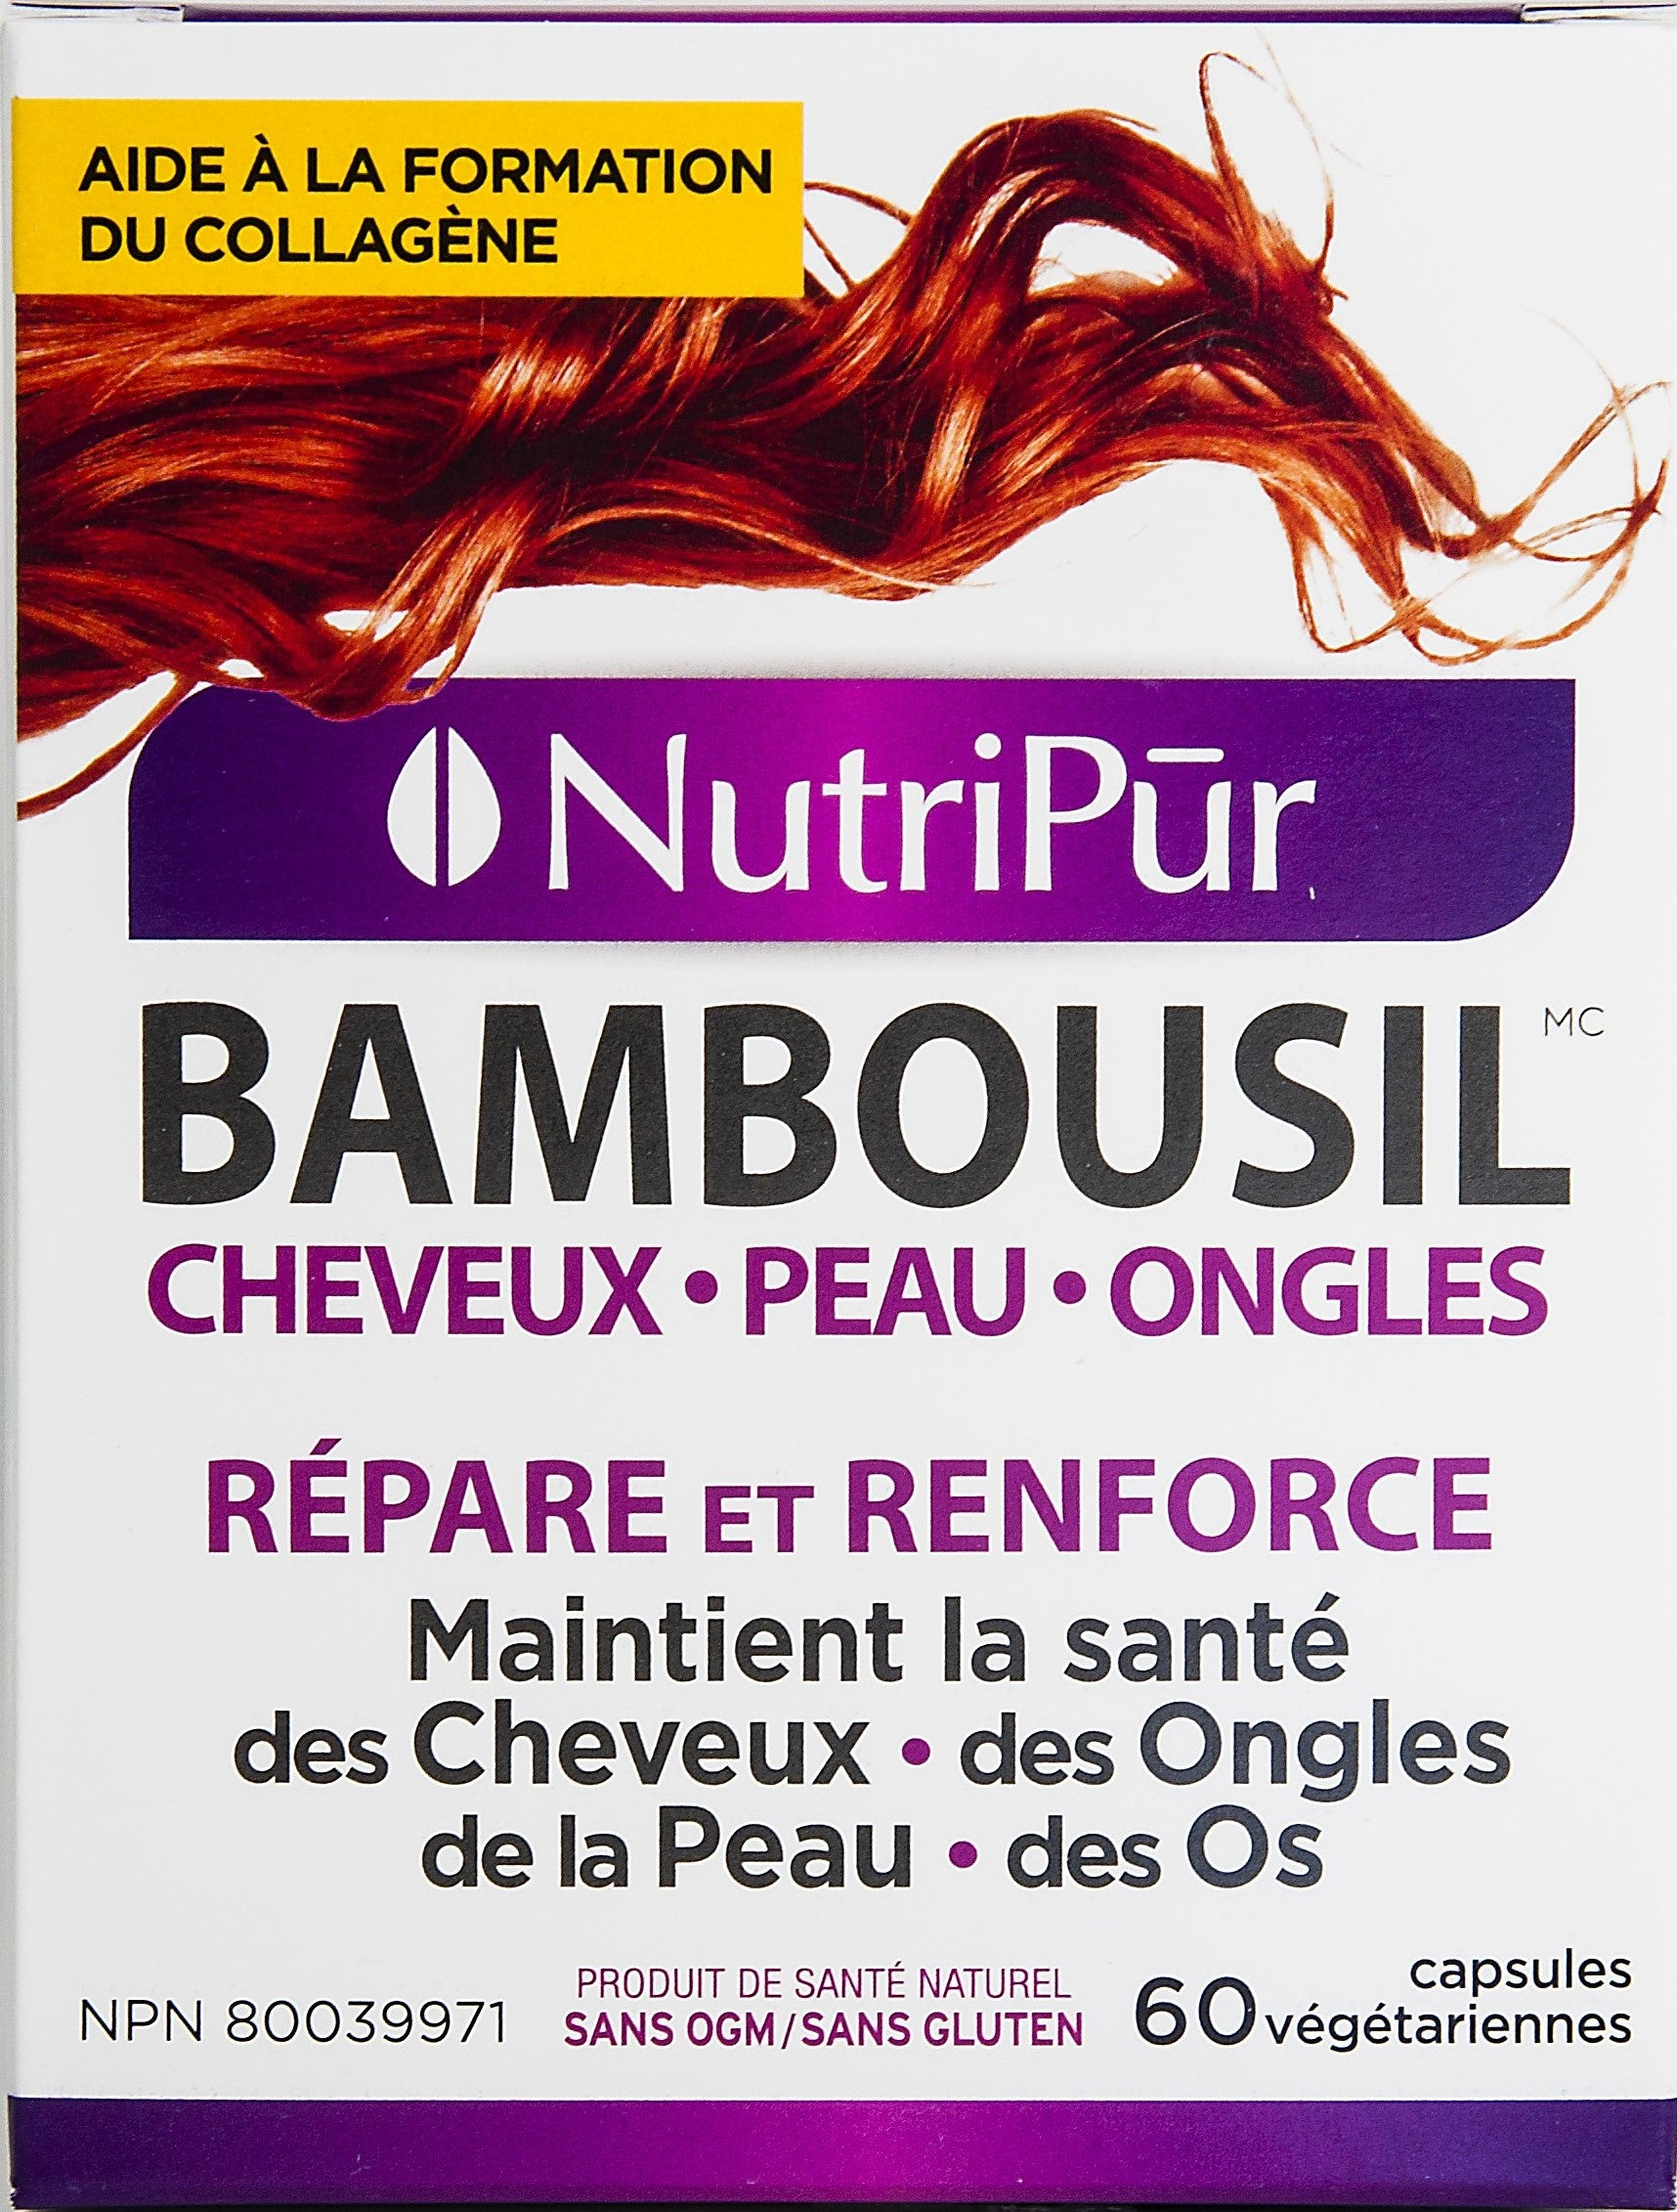 Nutripur Bambousil Hair Skin Nails-60 caps by Nutripur - Ebambu.ca natural health product store - free shipping <59$